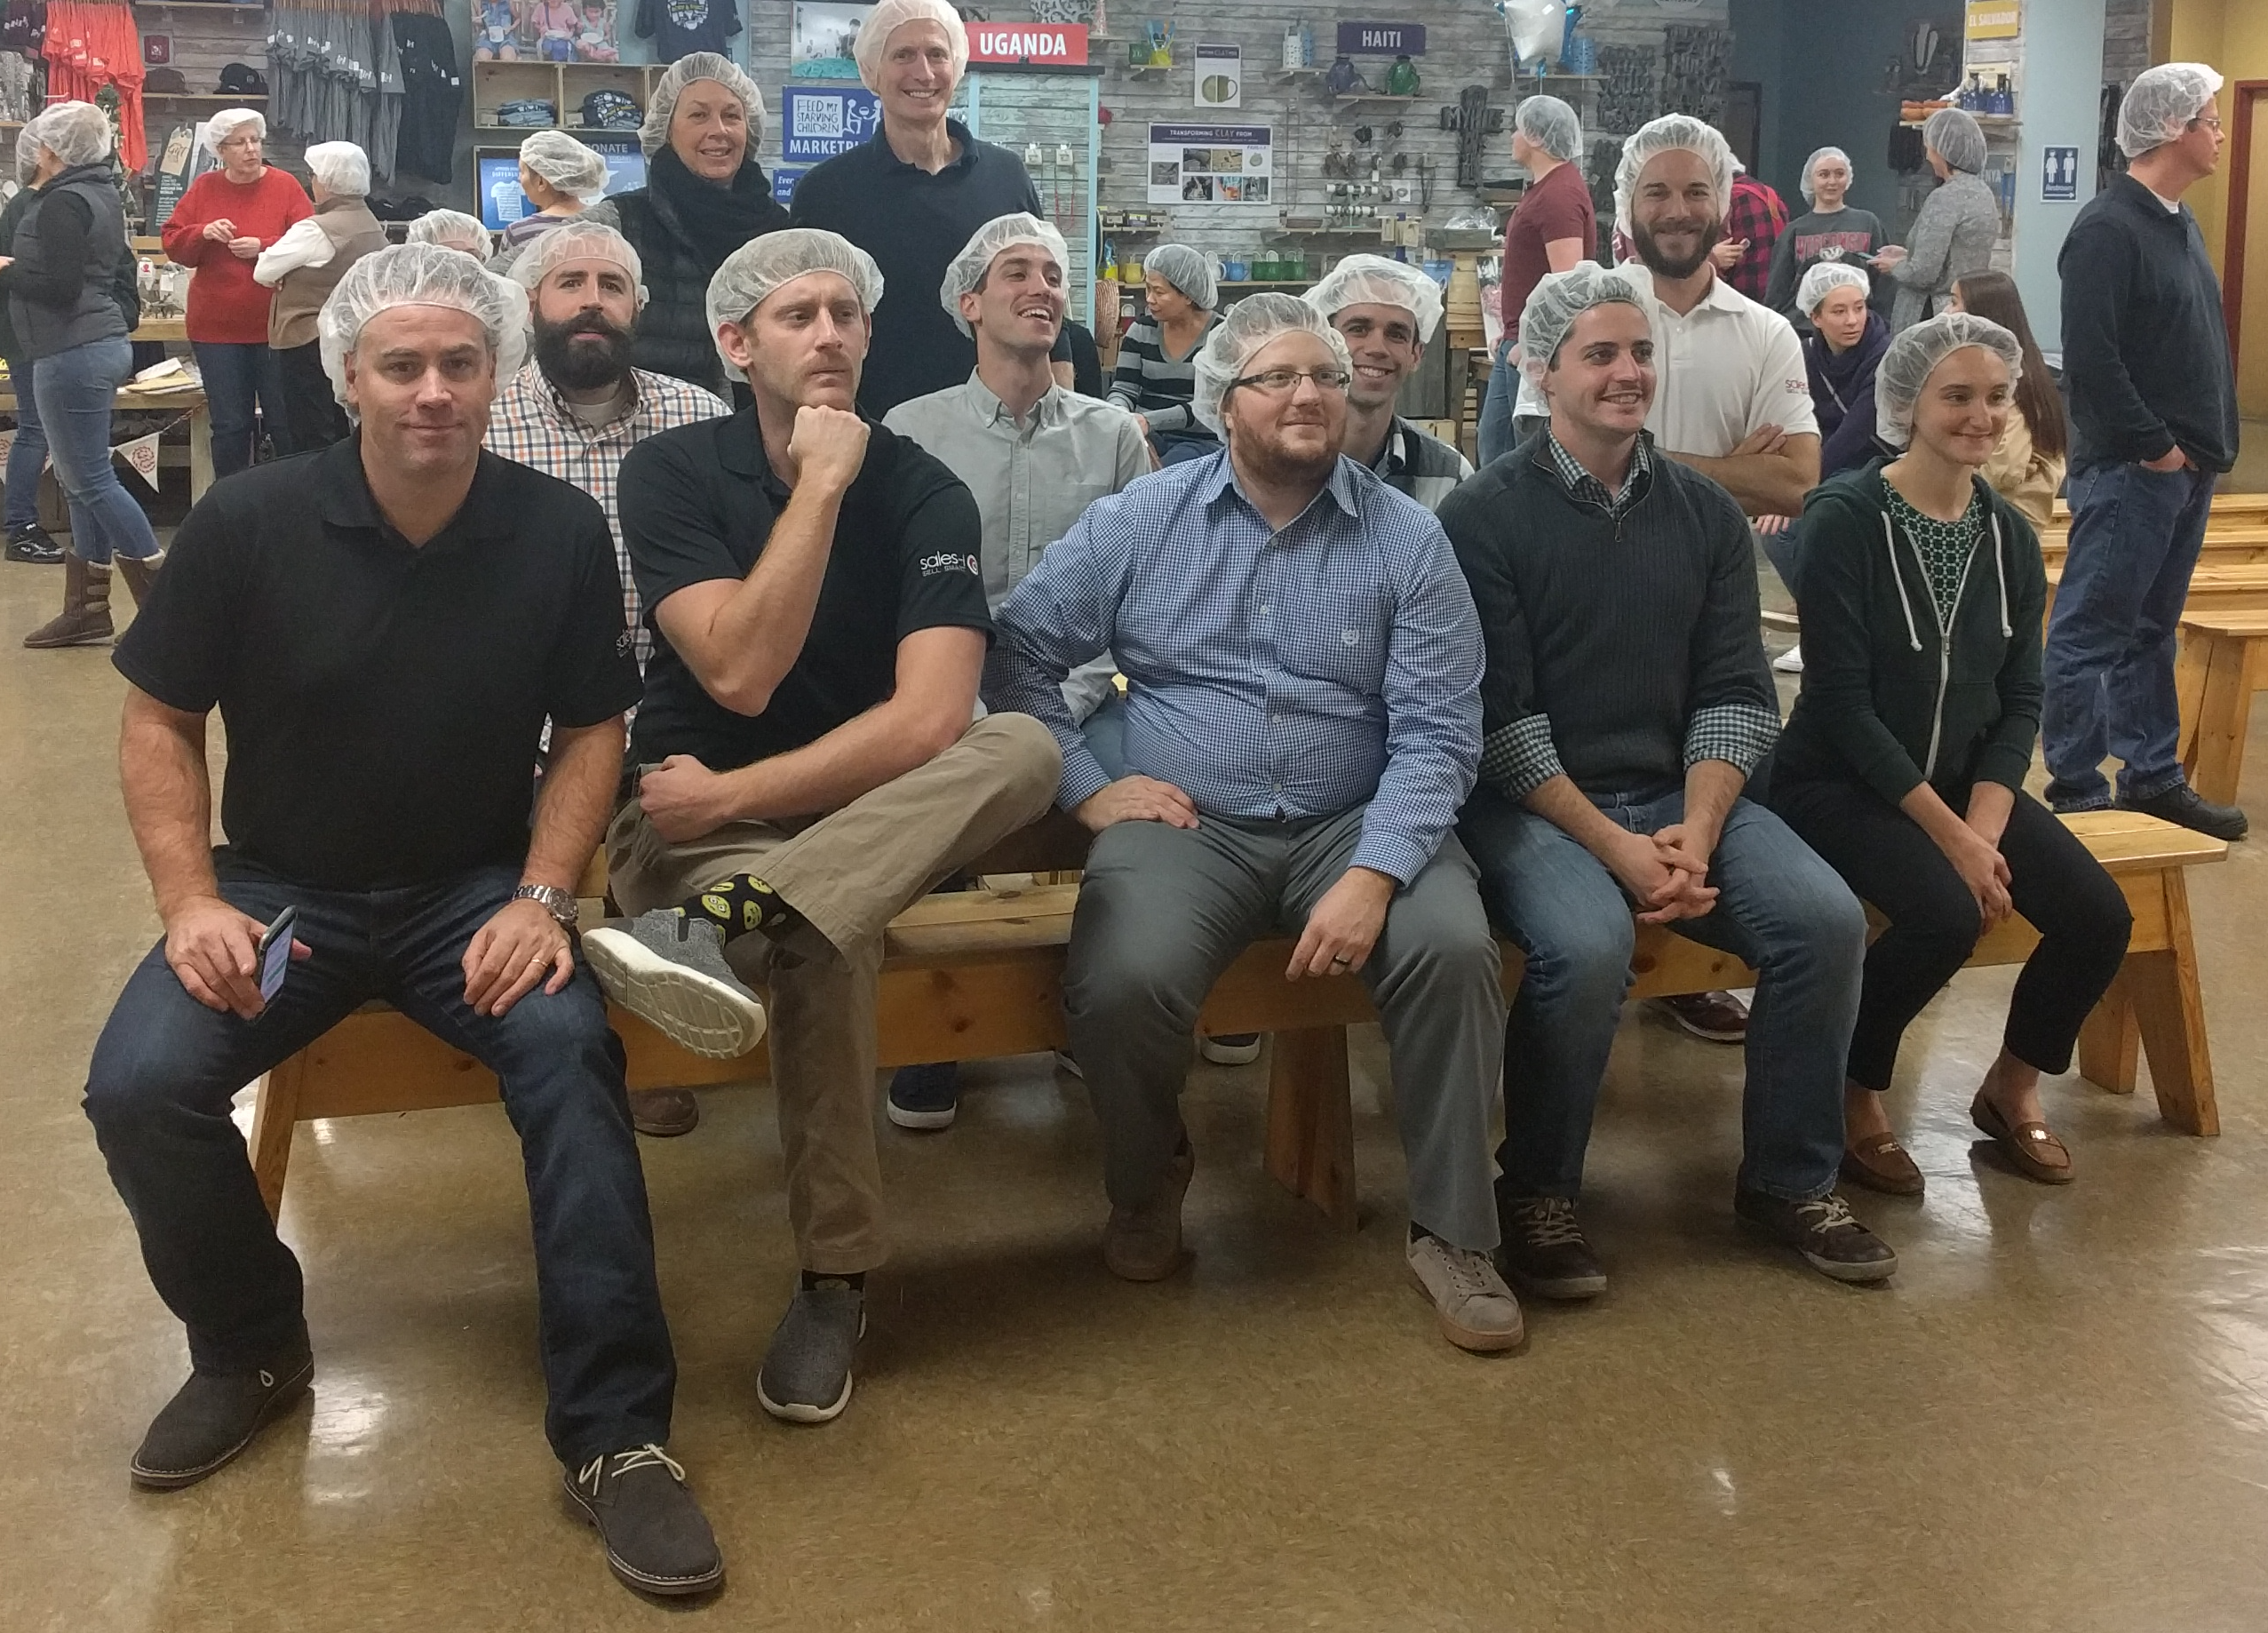 sales-i volunteering with Feed My Starving Children